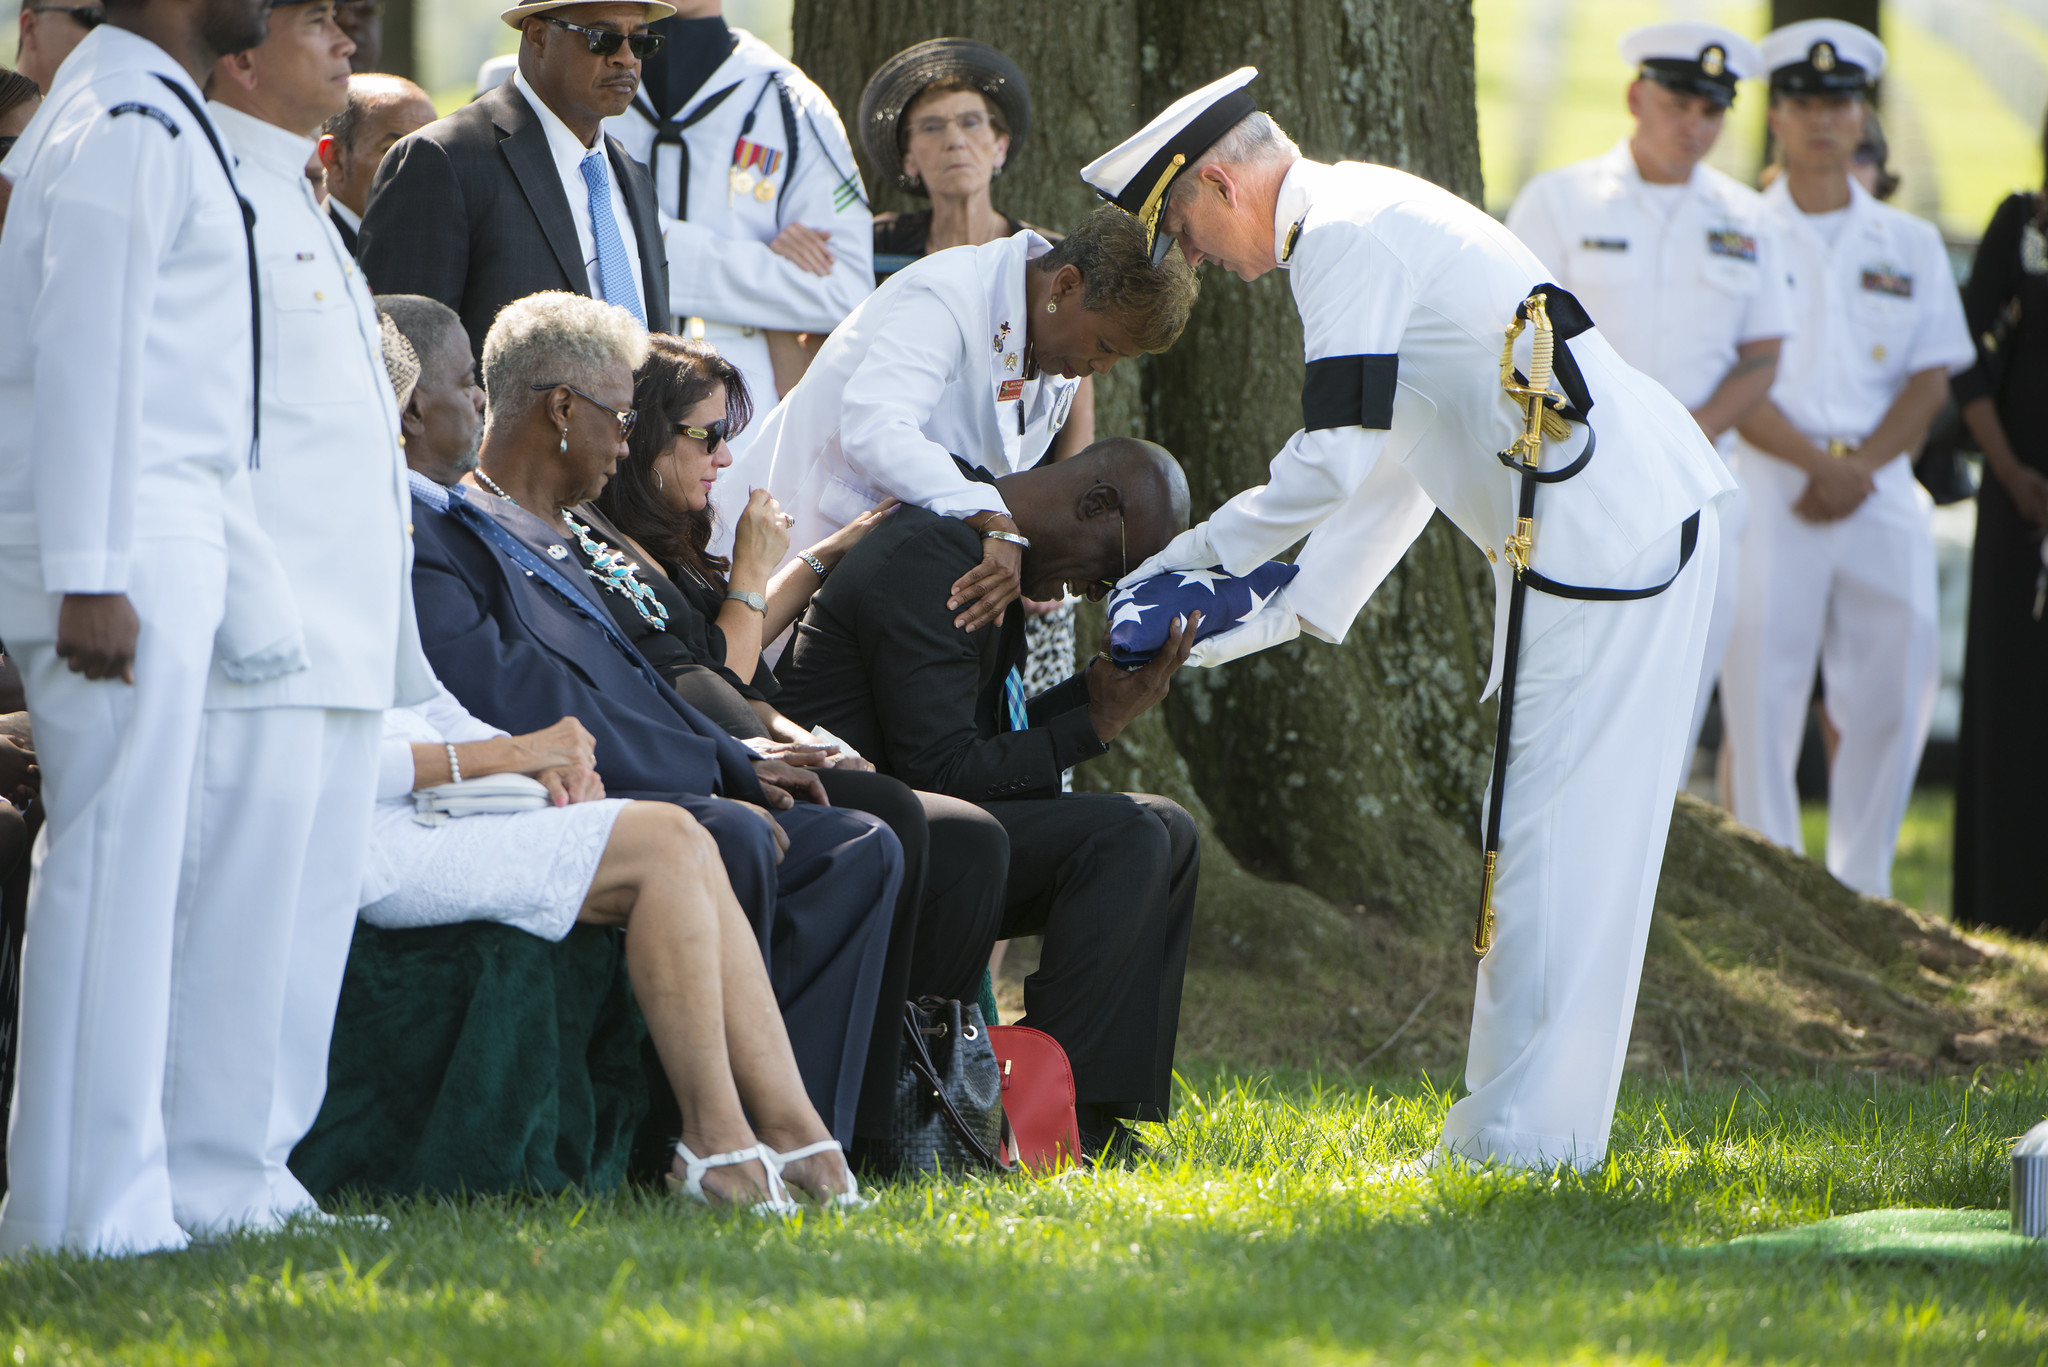 Funeral for U.S. Navy Petty Officer 1st Class Xavier A. Martin at Arlington National Cemetery